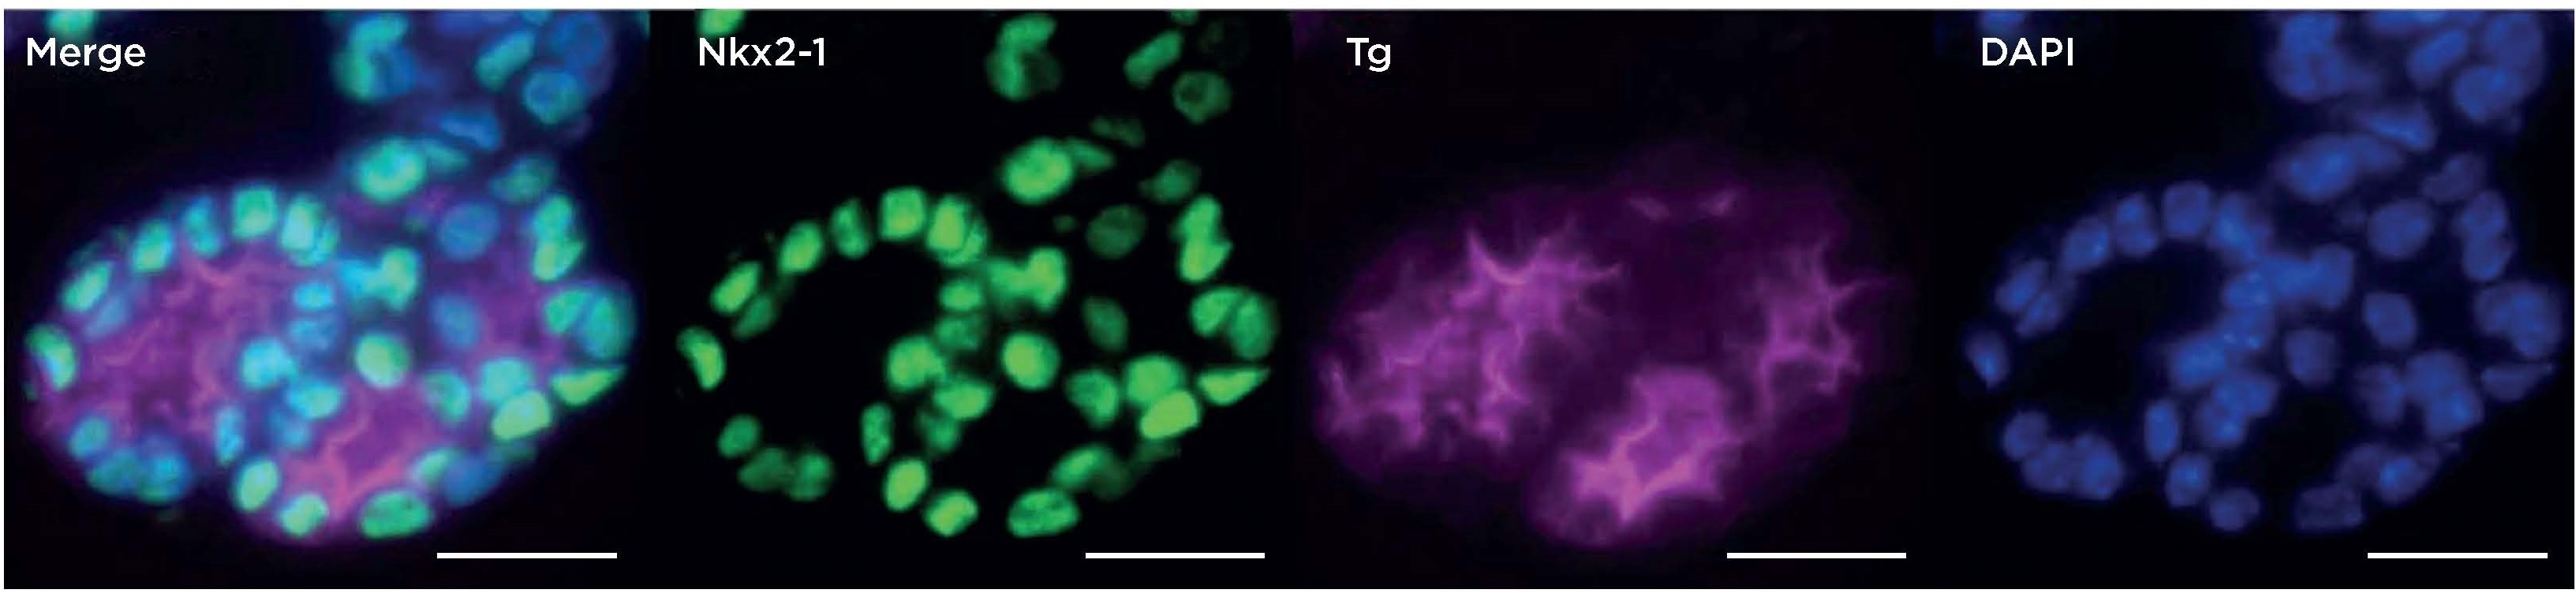 In vitro development of ESC-derived thyroid follicular cells by directed differentiation: immunofluorescence microscopy of day 30 follicular-like structures after immunostaining for Nkx2-1 and thyroglobulin (Tg). Nuclei are counterstained with DAPI; scale bars 10µm. Reproduced with permission from Figure 5F, Kurman et al. 2015 Cell Stem Cell 17 527 542